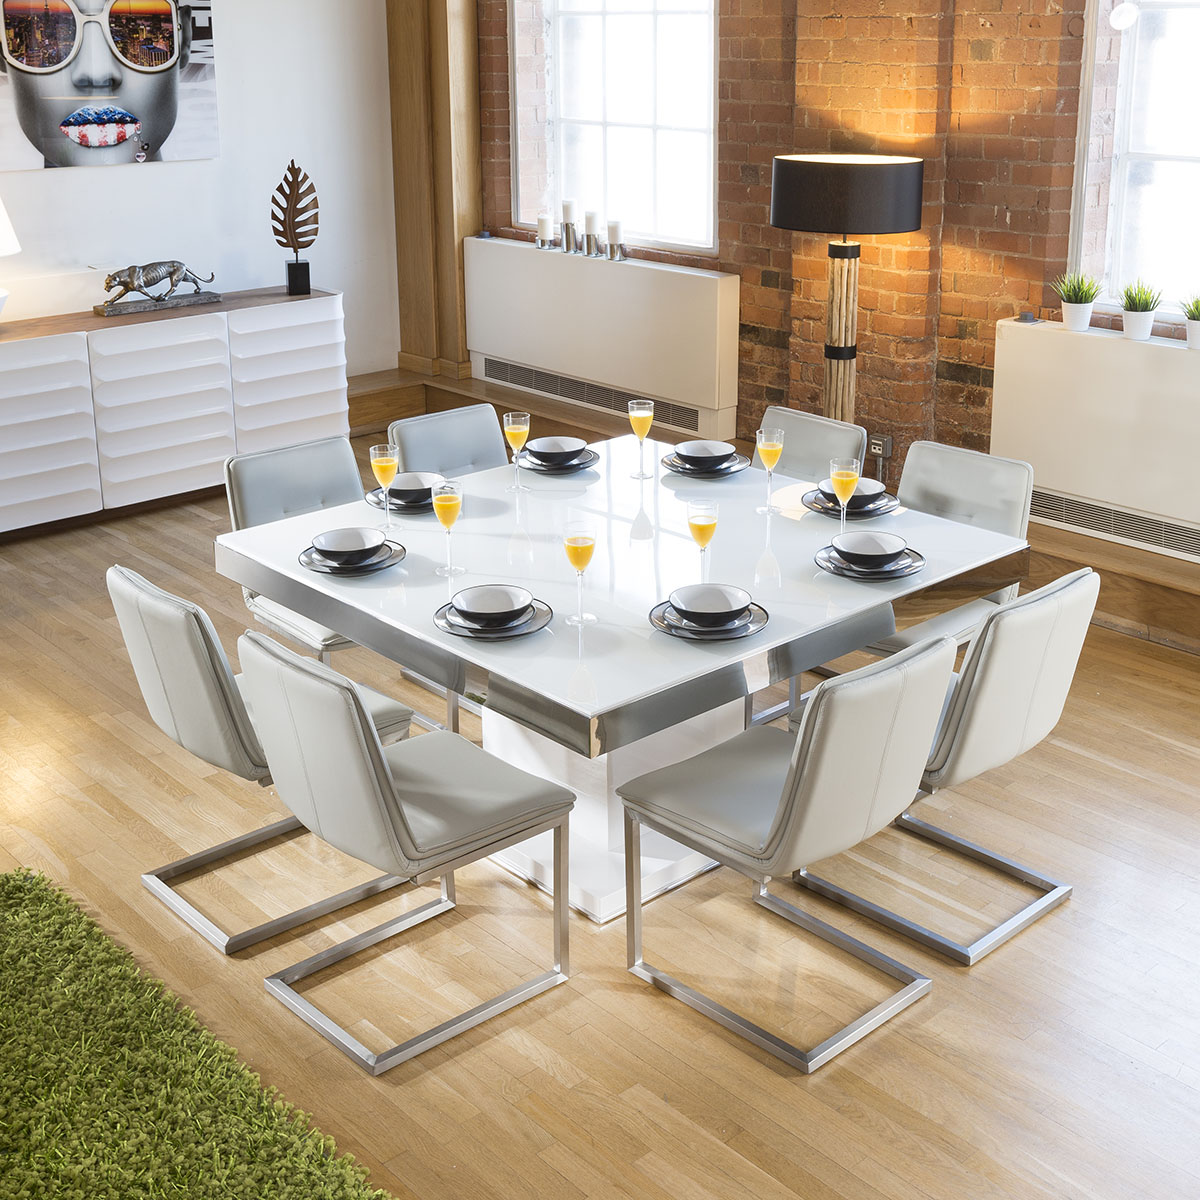 Dining Table Seats 8: Large Square White Glass Gloss Dining Table + 8 Ice